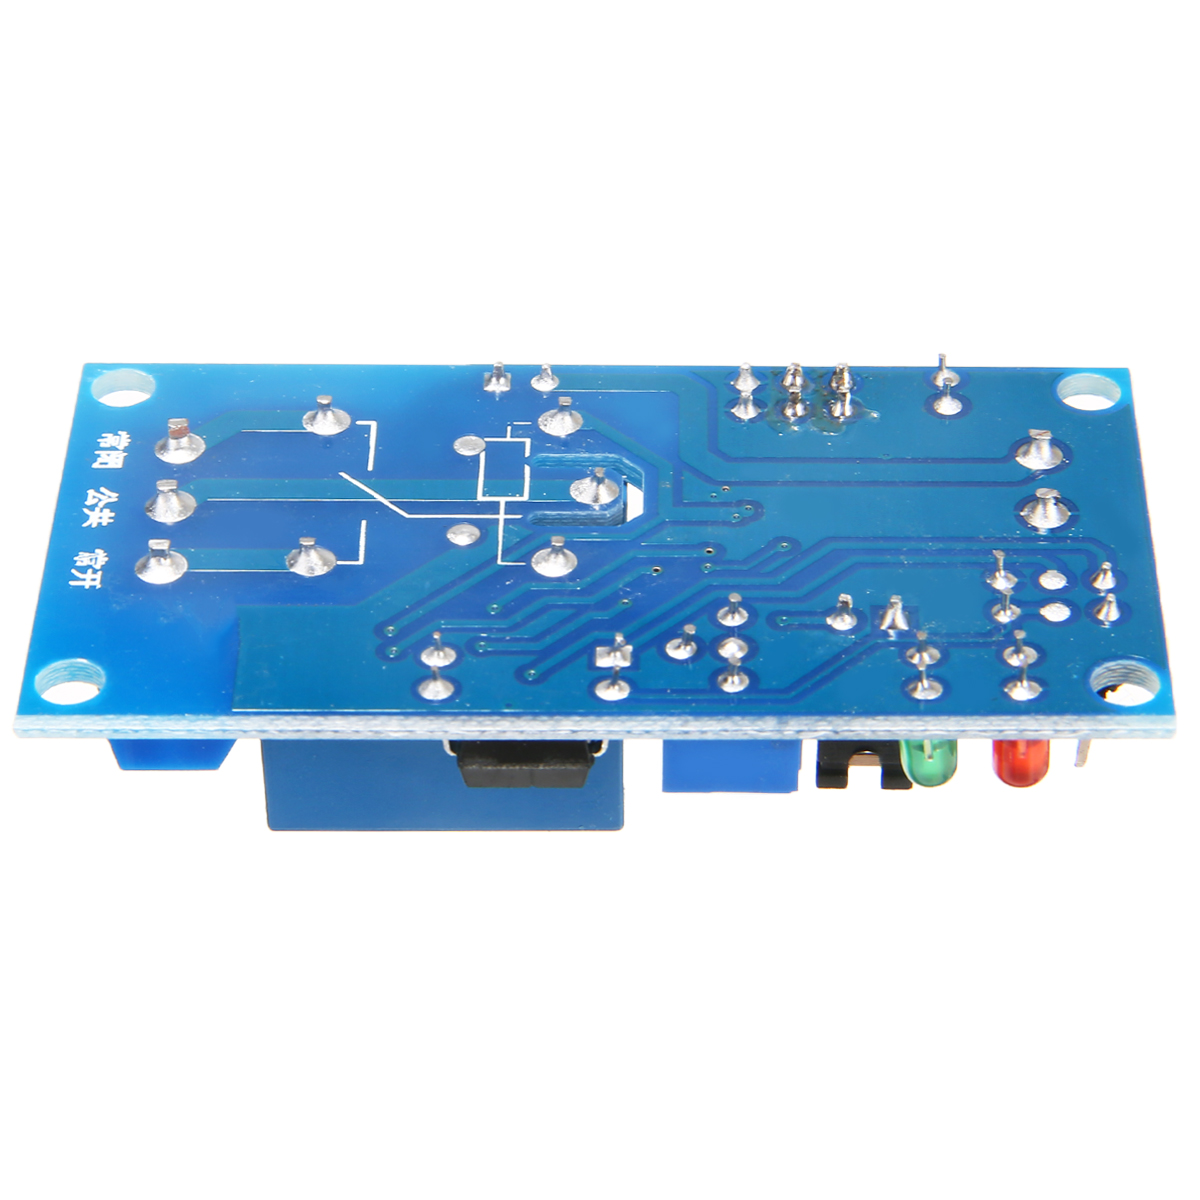 1pc DC 12V Time Delay Relay Module Circuit Timer Timing Board Switch Trigger Control Module in Relays from Home Improvement